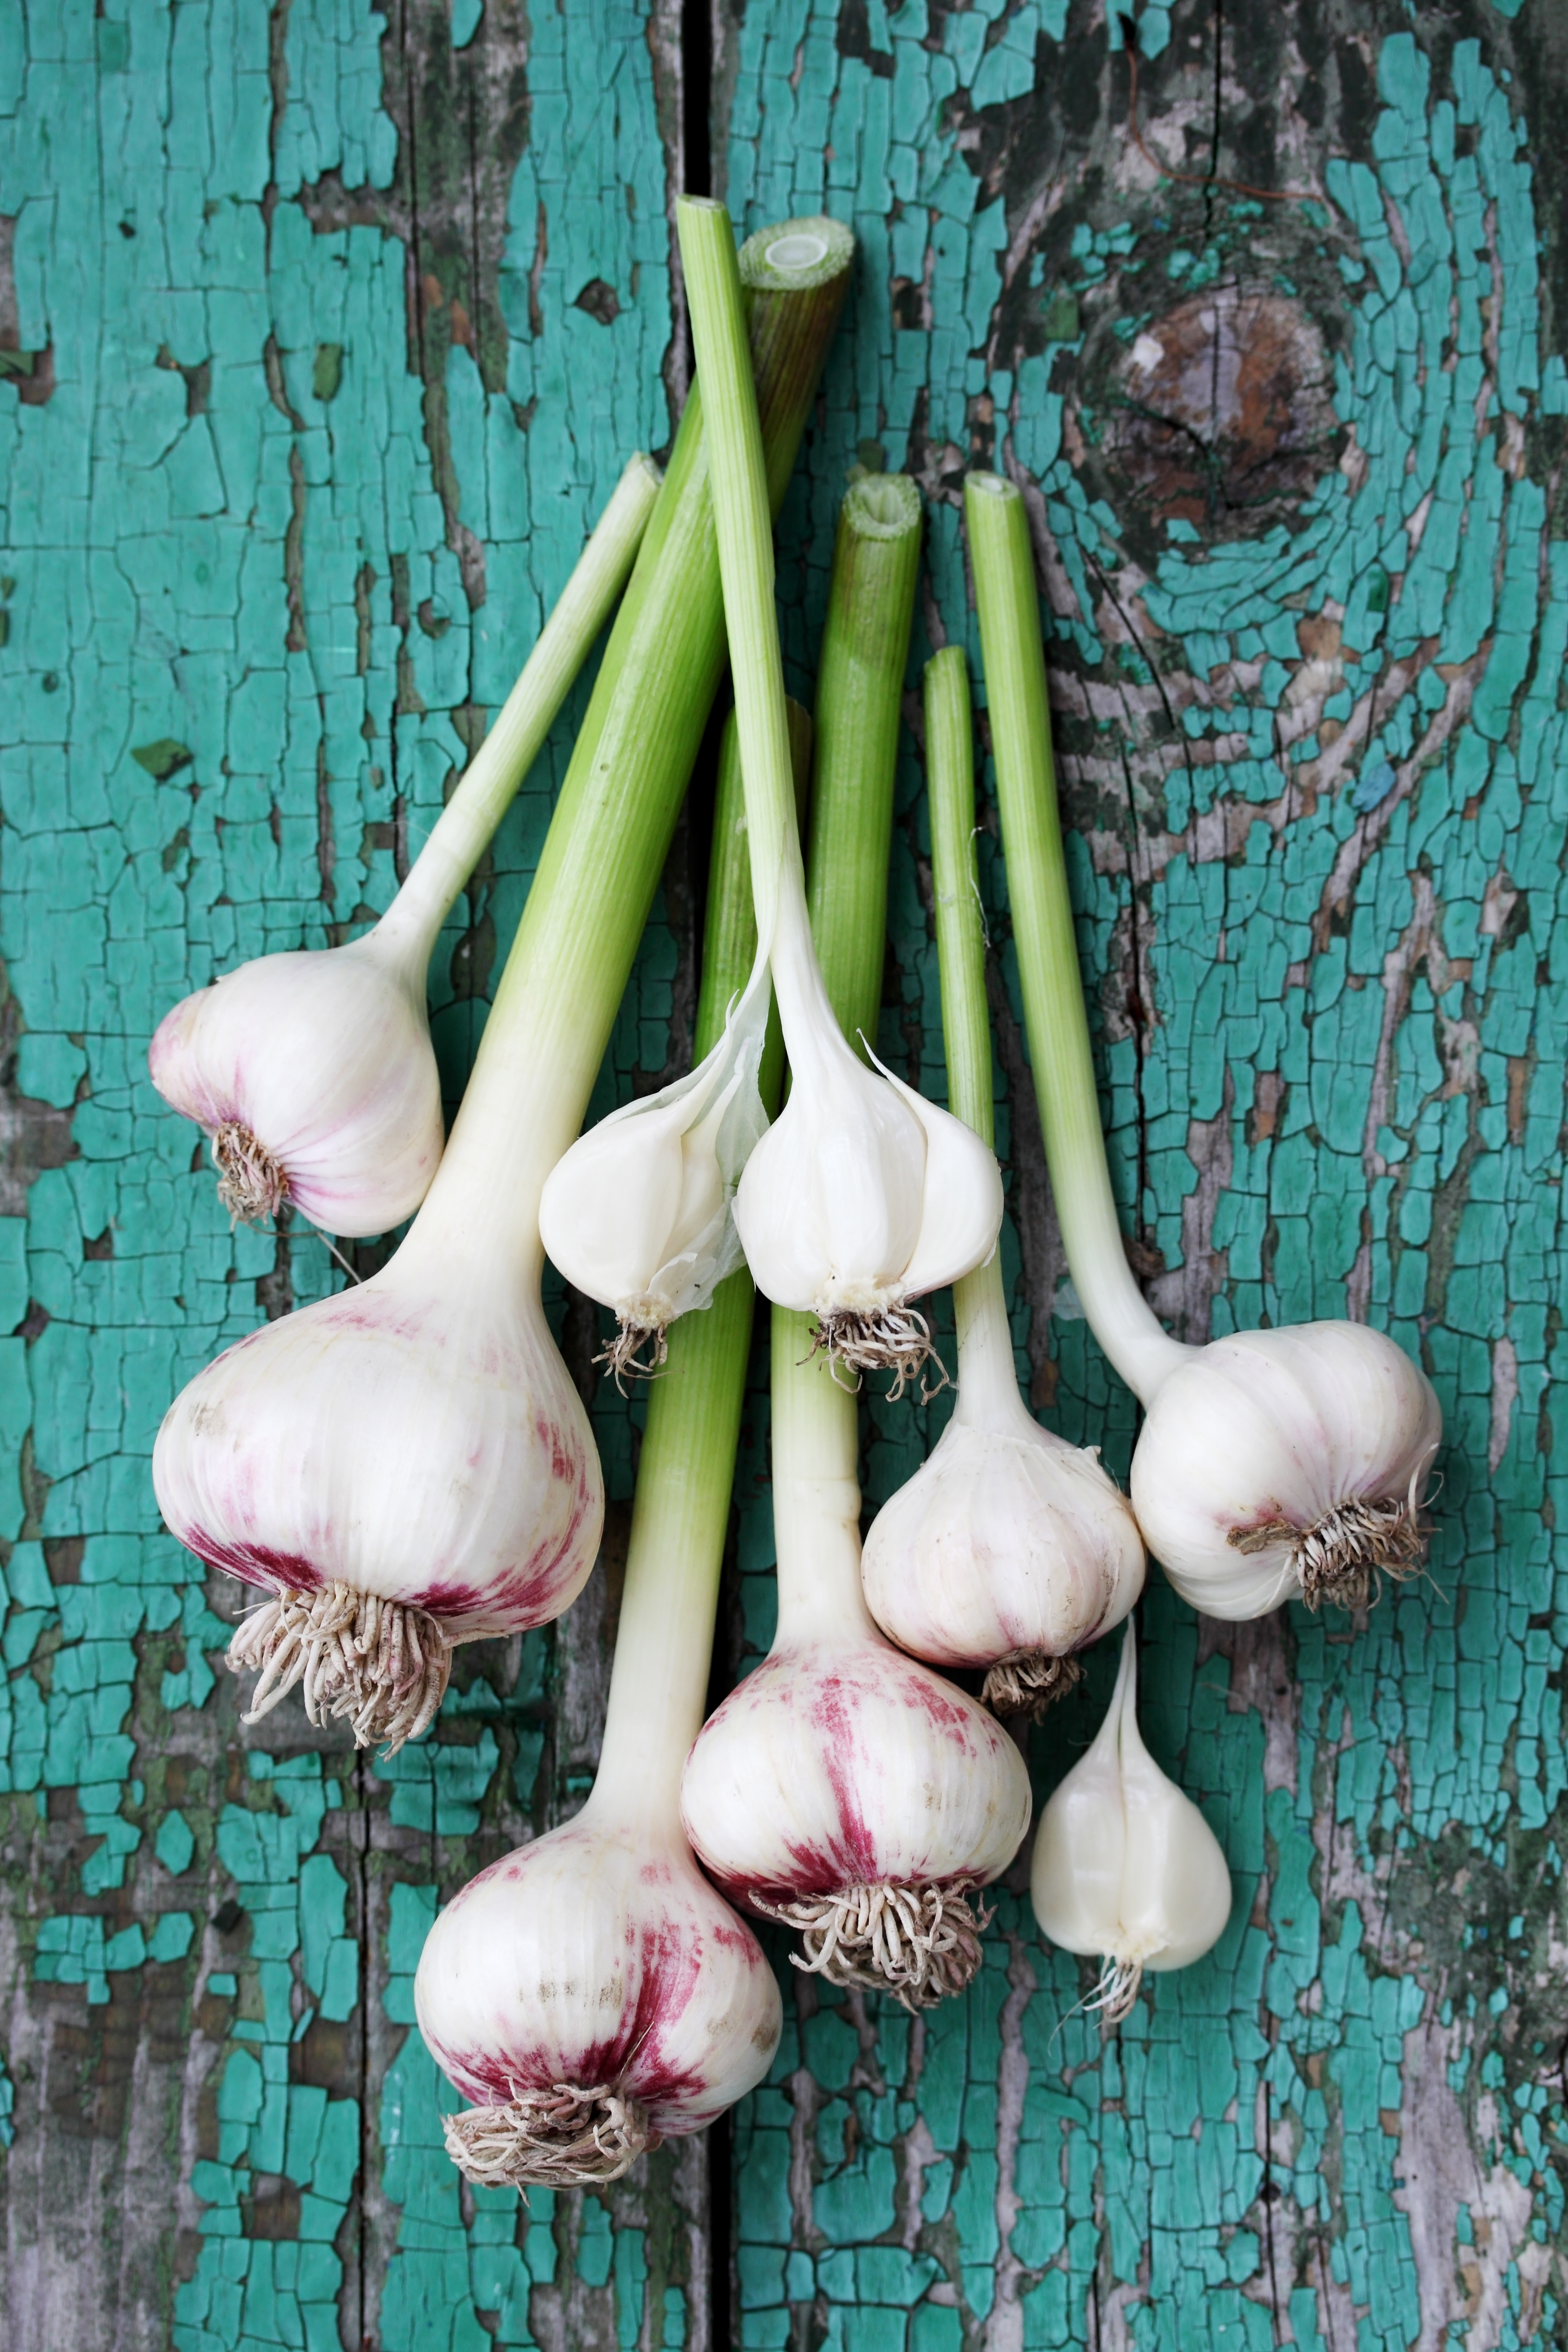 Fresh garlic on a wooden board that is painted green.